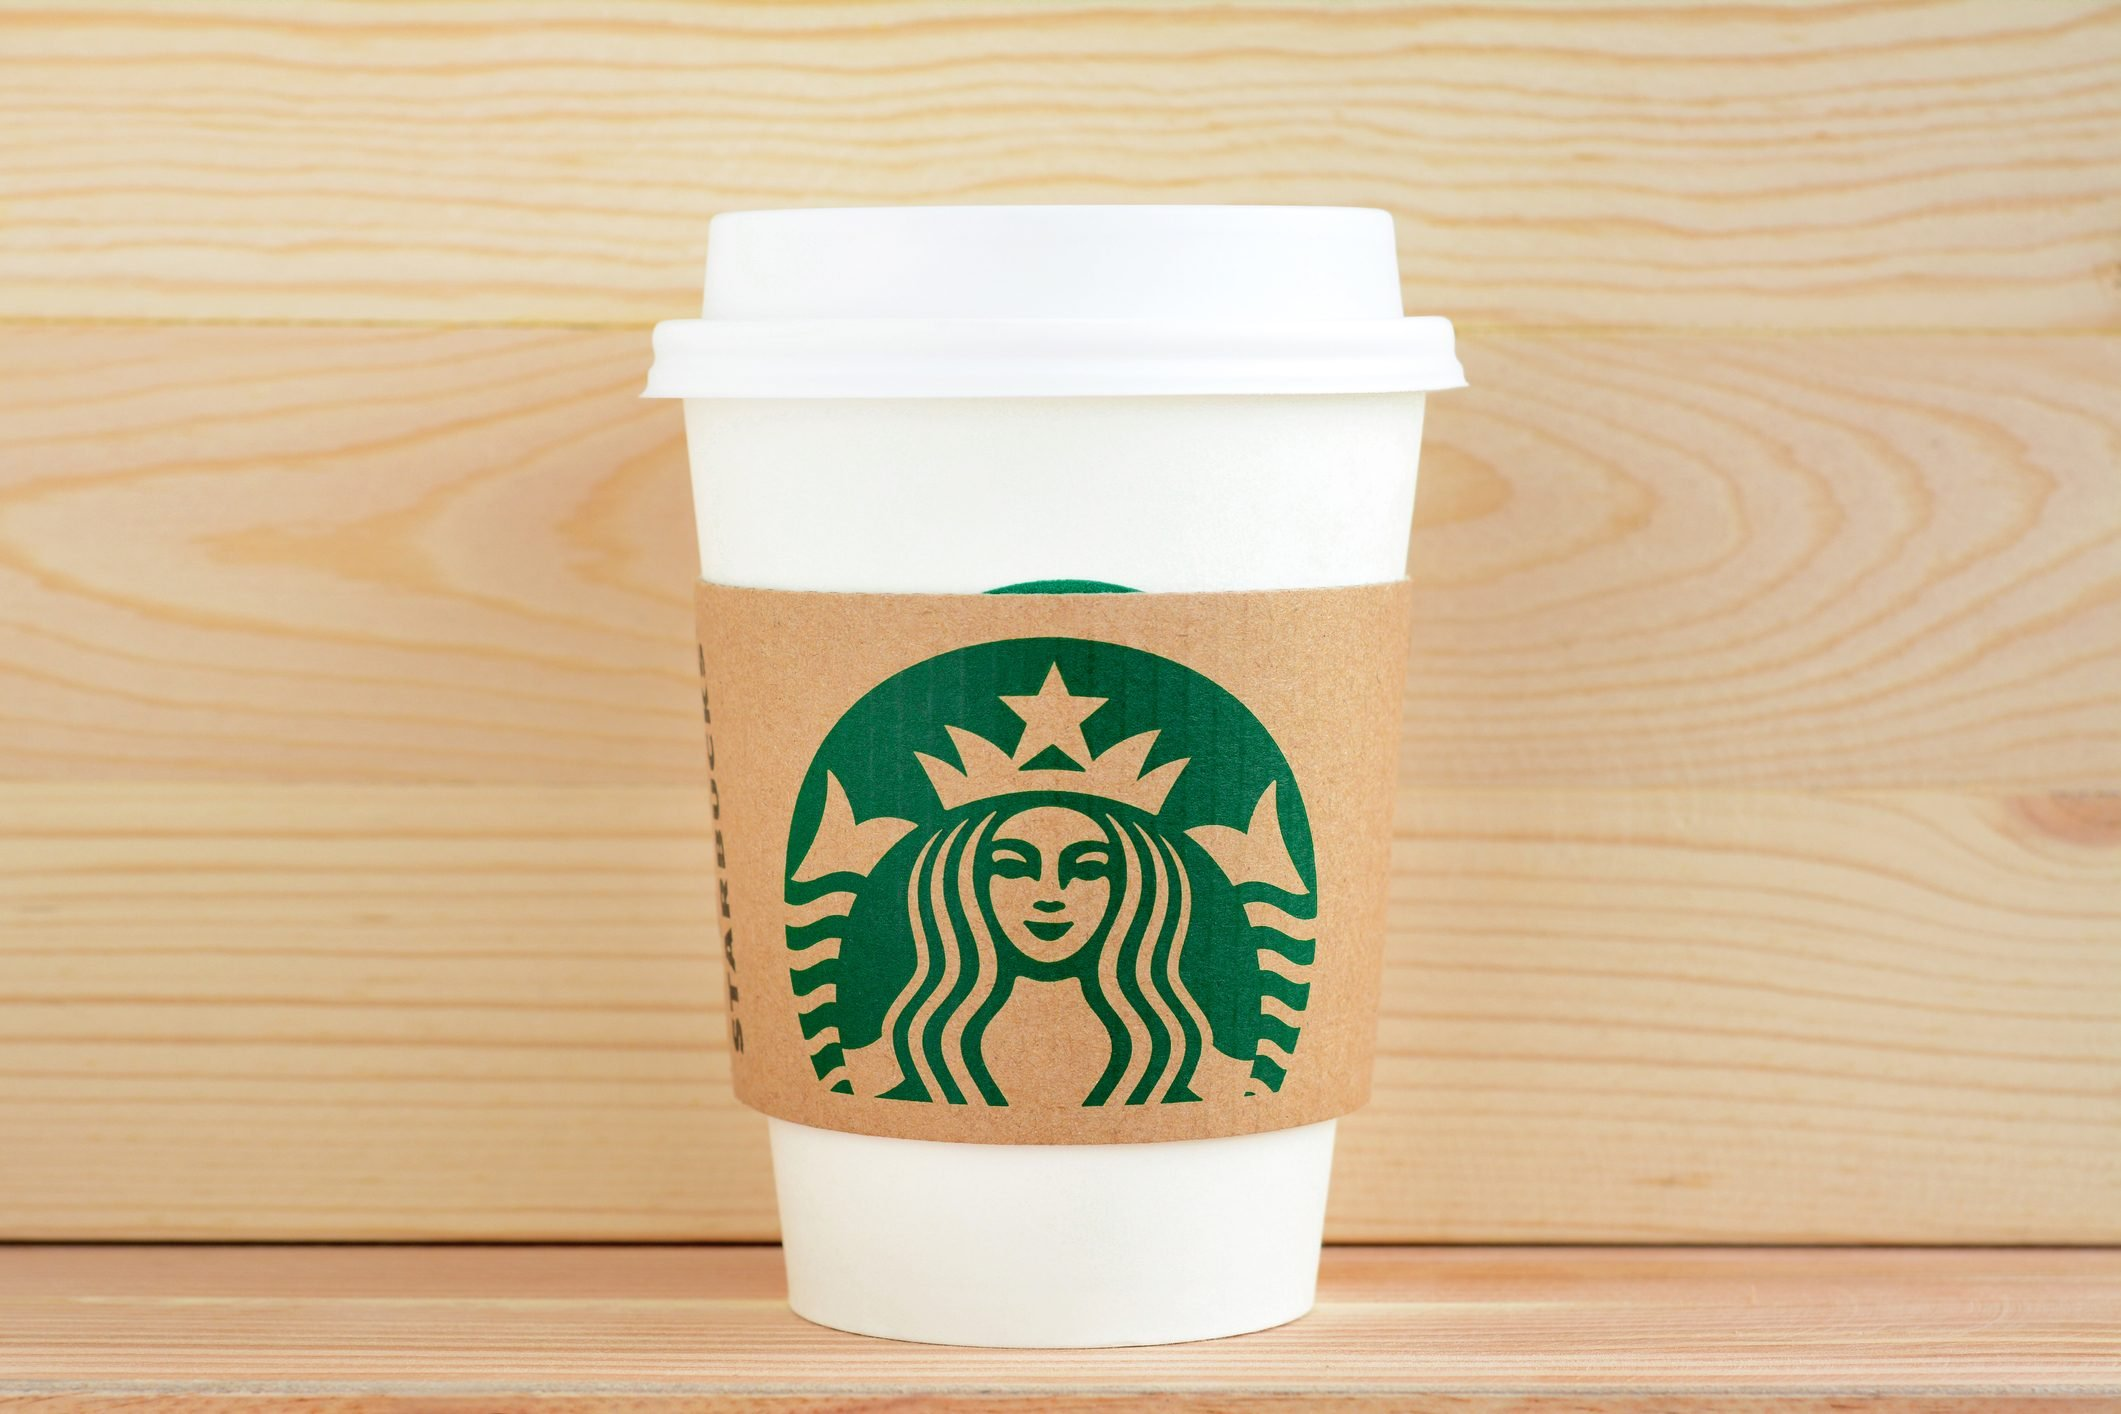 Starbucks paper coffee cup with brand logo on sleeve